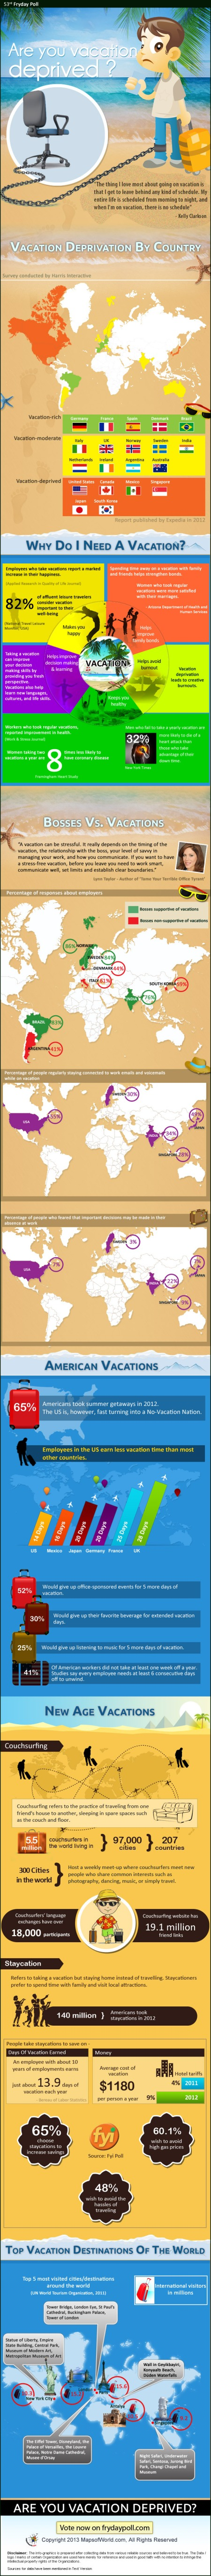 are-you-vacation-deprived-facts-infographic